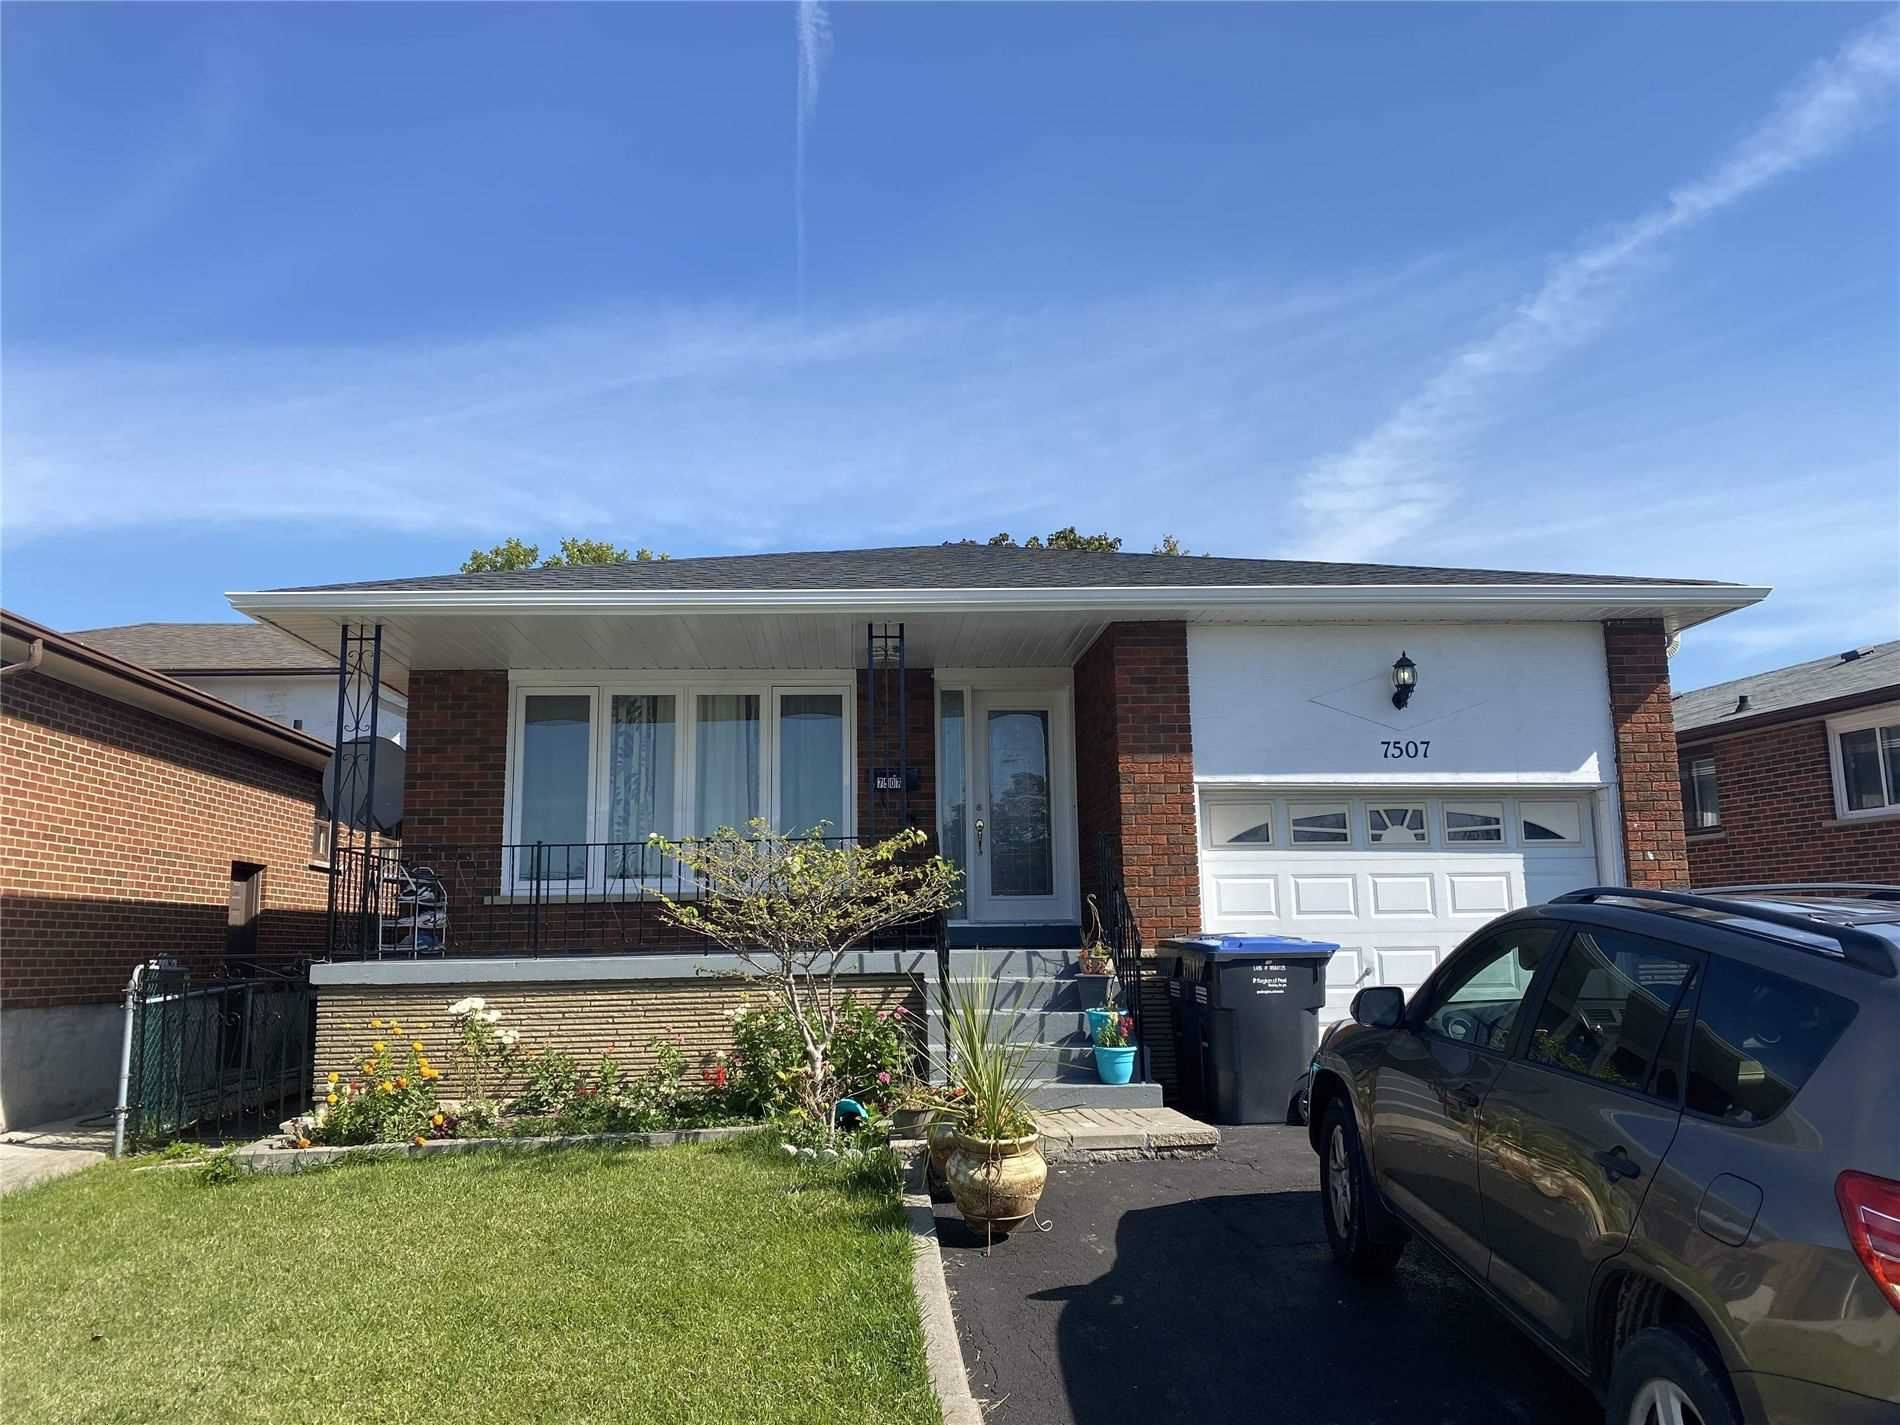 7507 Middlebrook St, Mississauga, ON L4T3S1 - MLS#: W5390852